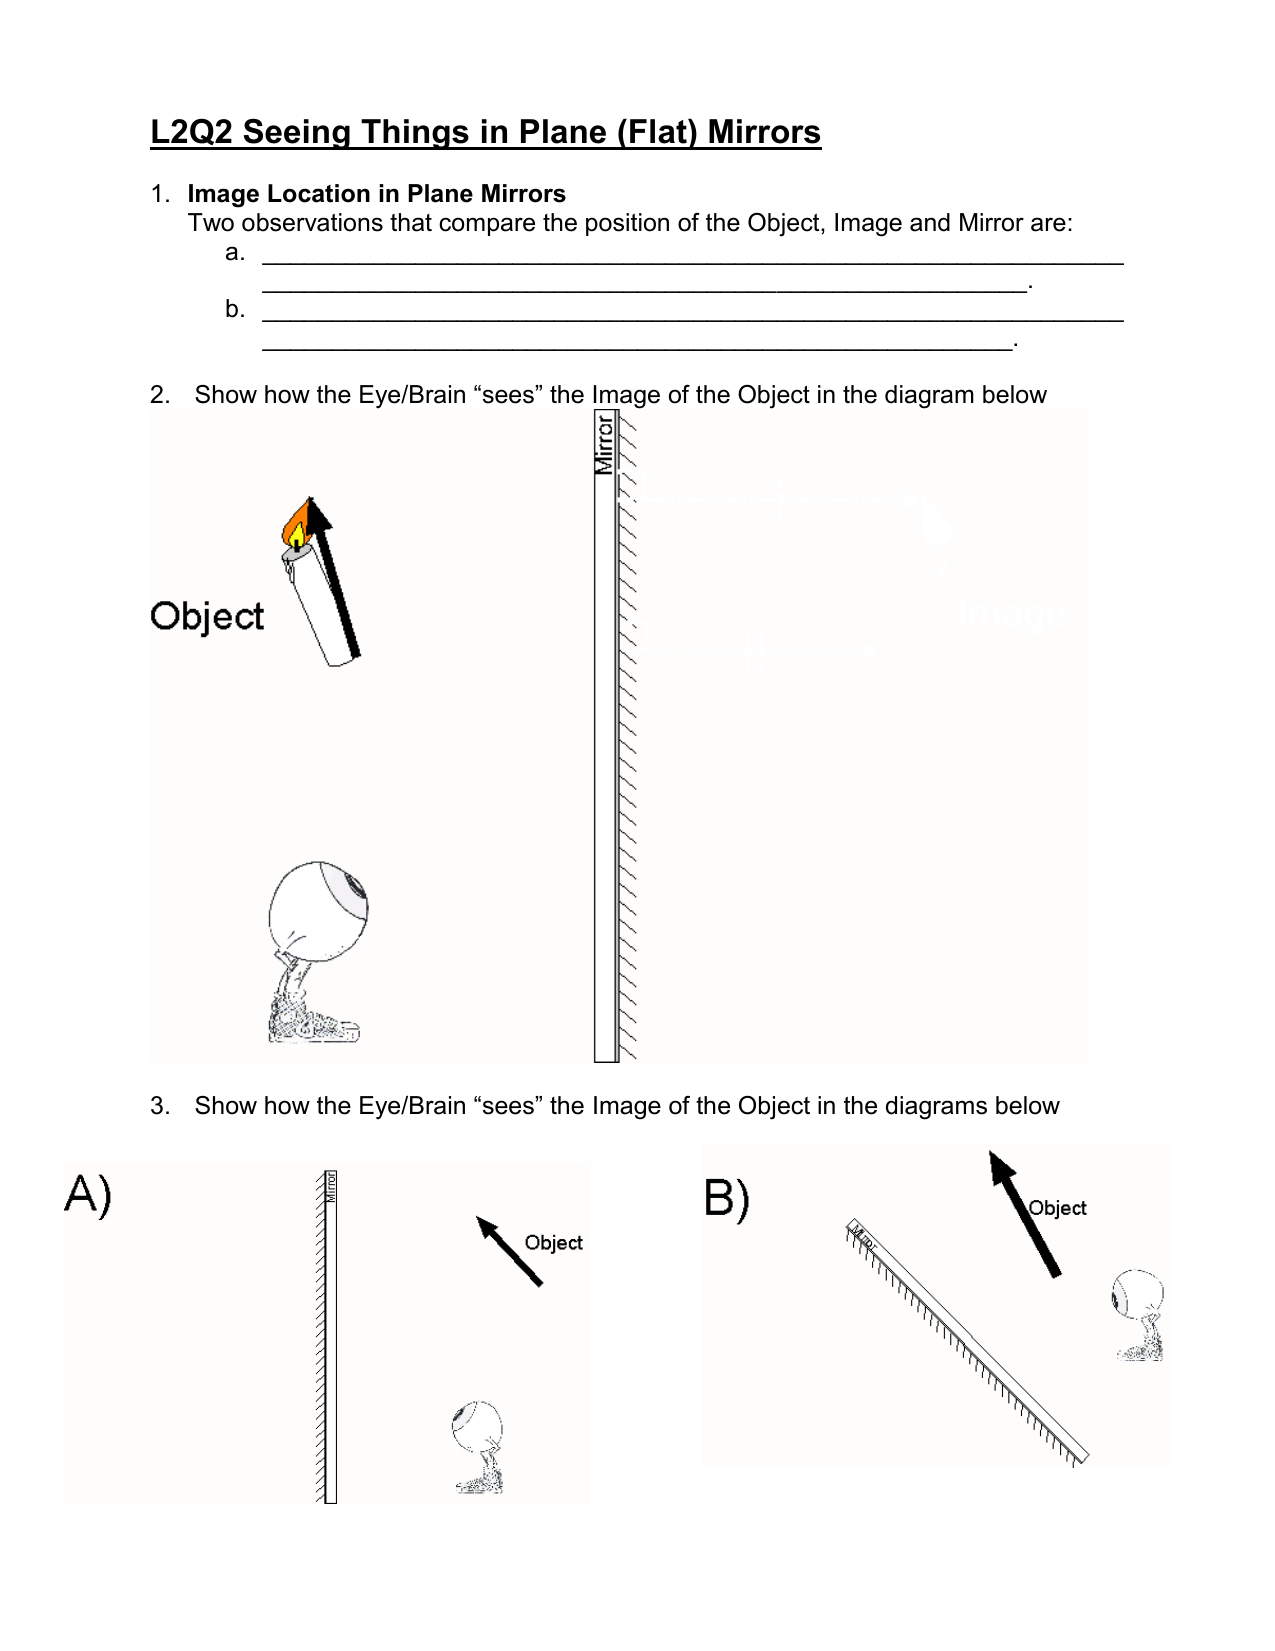 worksheet Ray Diagrams For Plane Mirrors Worksheet seeing things in plane flat mirrors optics lesson 2